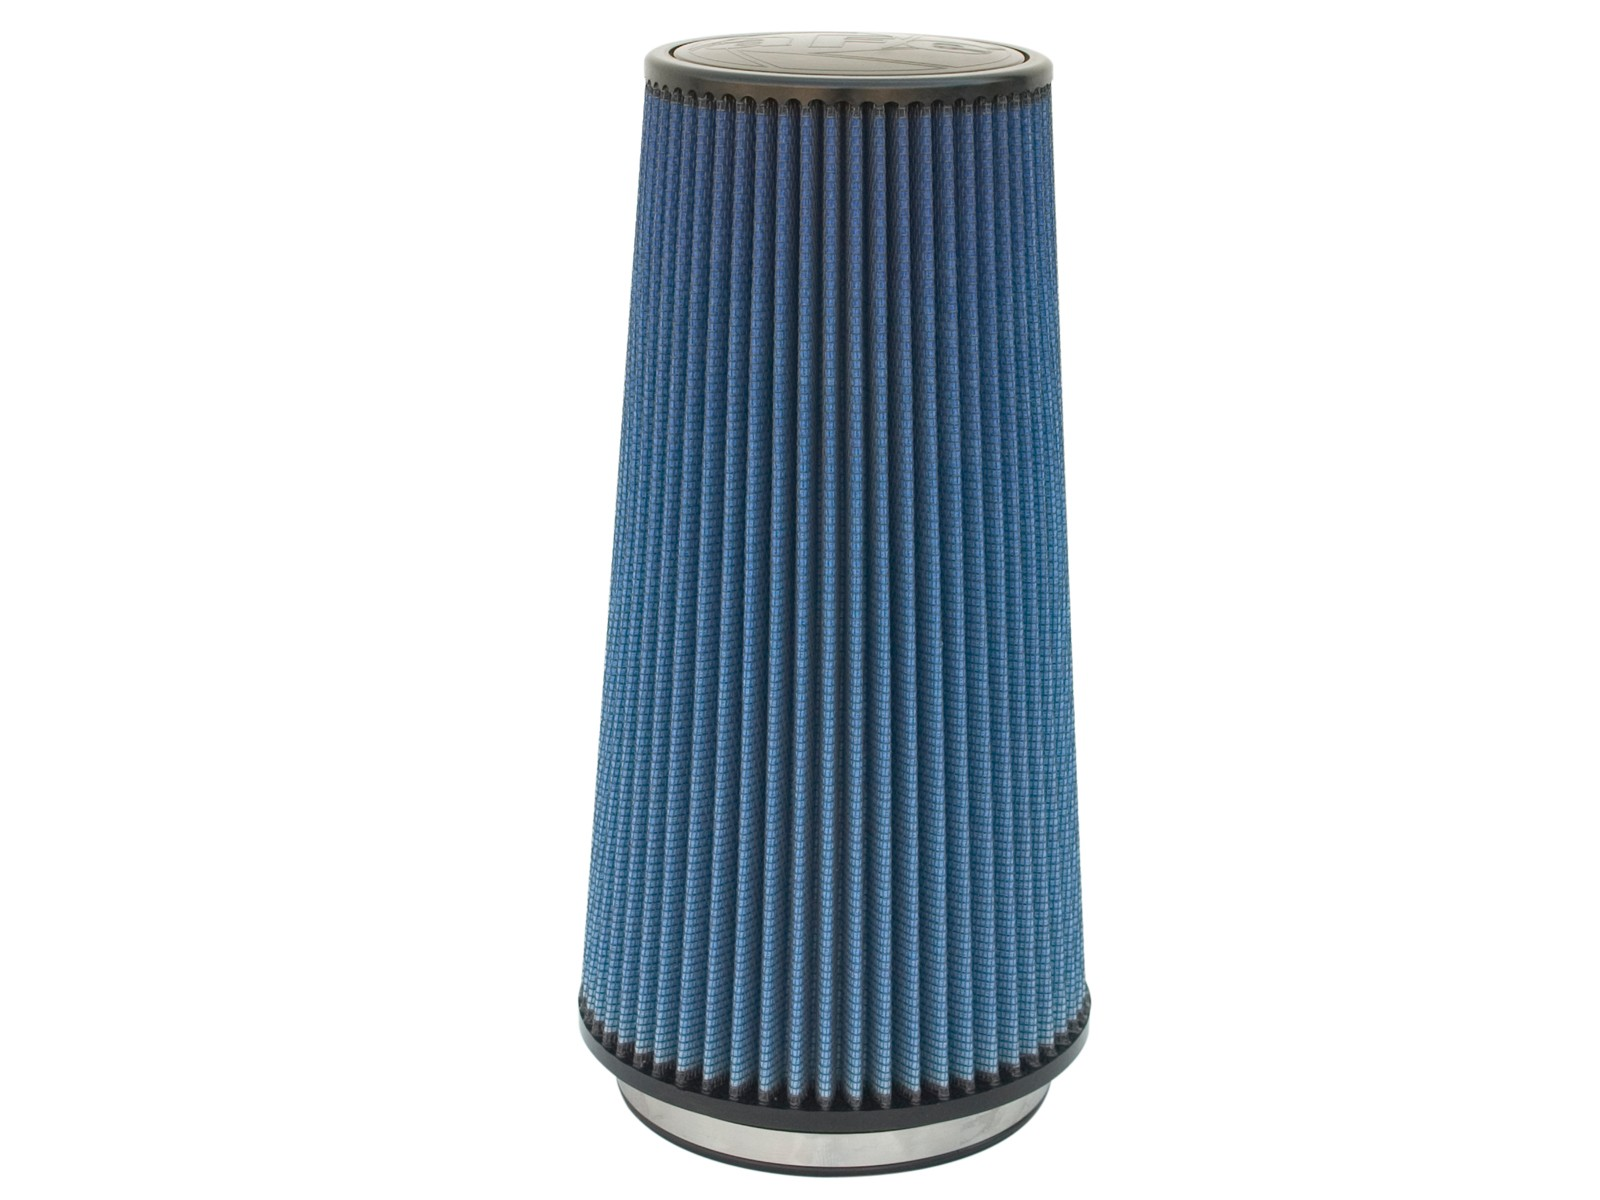 aFe POWER 24-60514 Magnum FLOW Pro 5R Air Filter